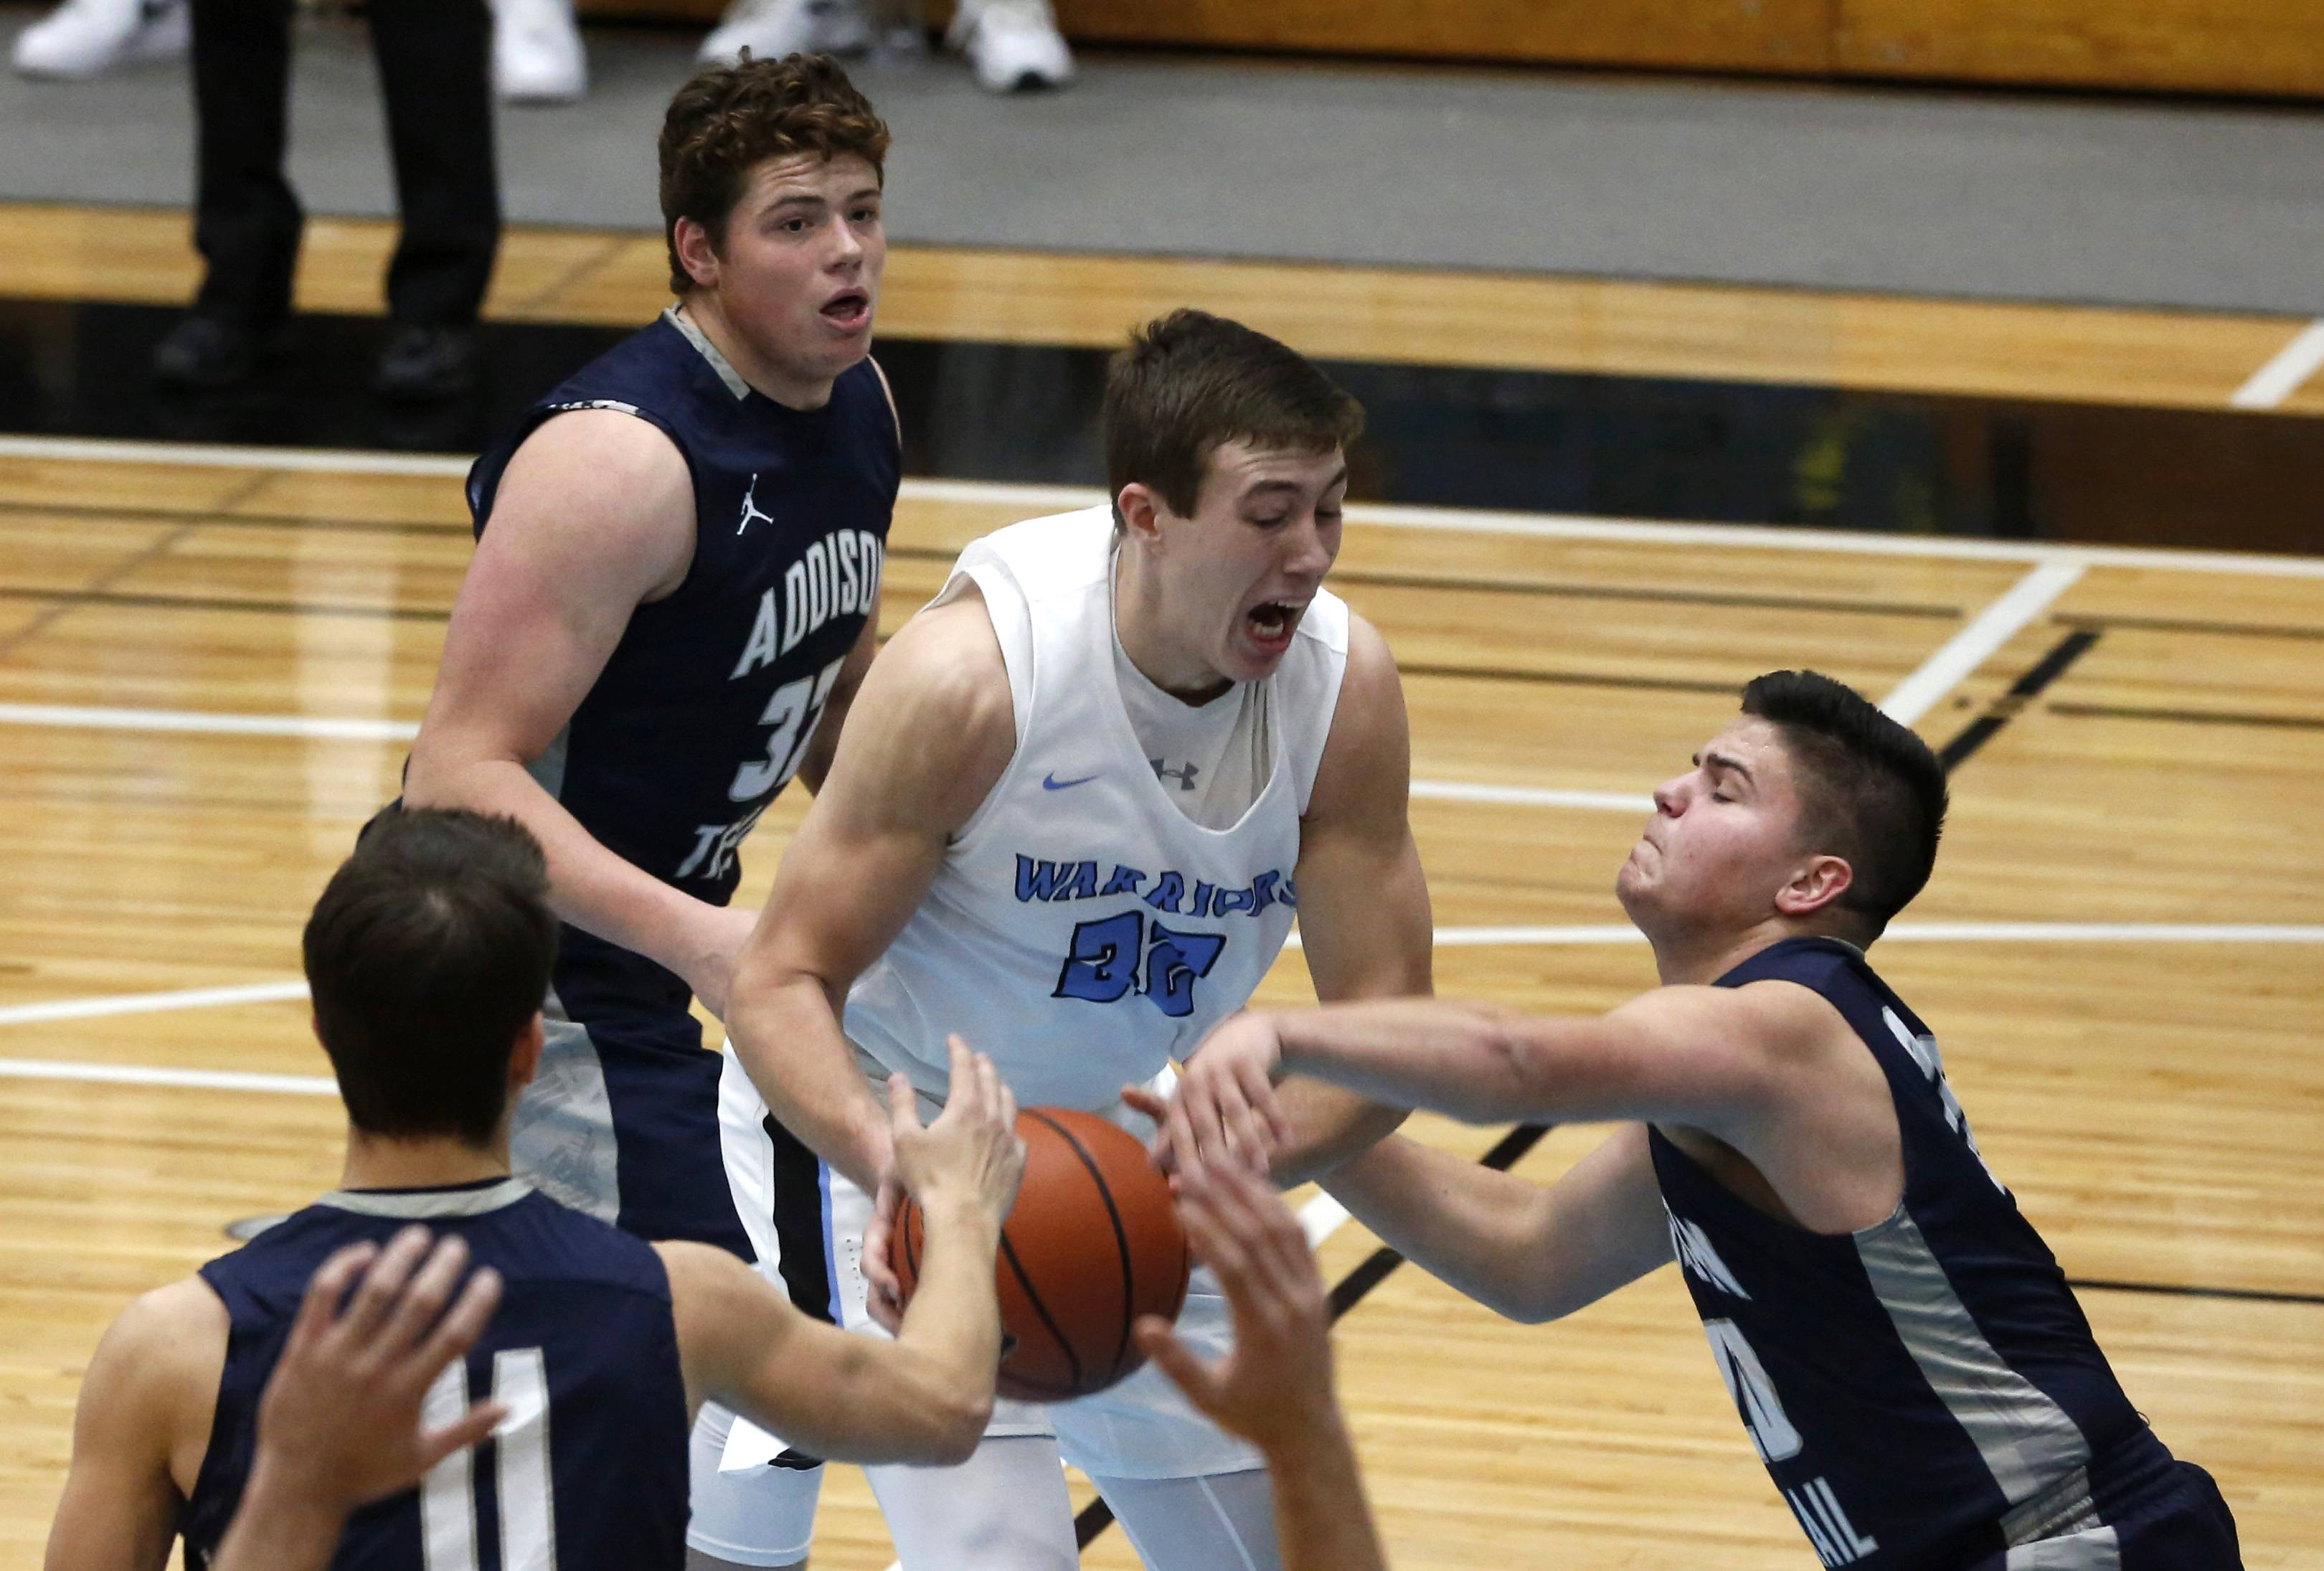 Willowbrook's Ethan Schuemer (32) drives to the basket against Addison Trail's Connor Palesch, right.